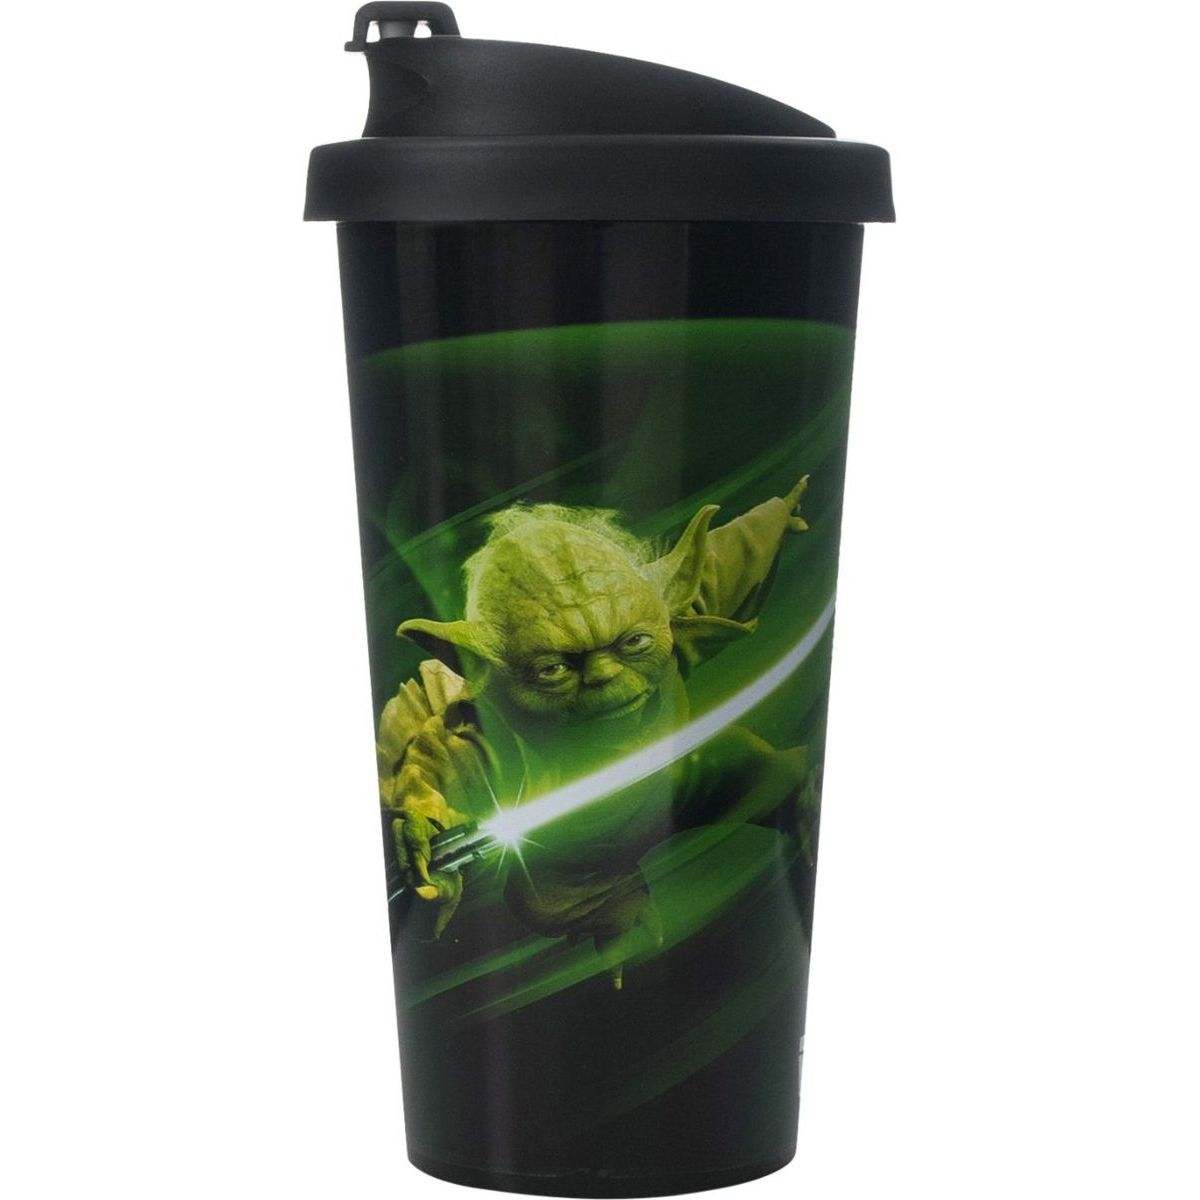 Star Wars To Go Cup Yoda